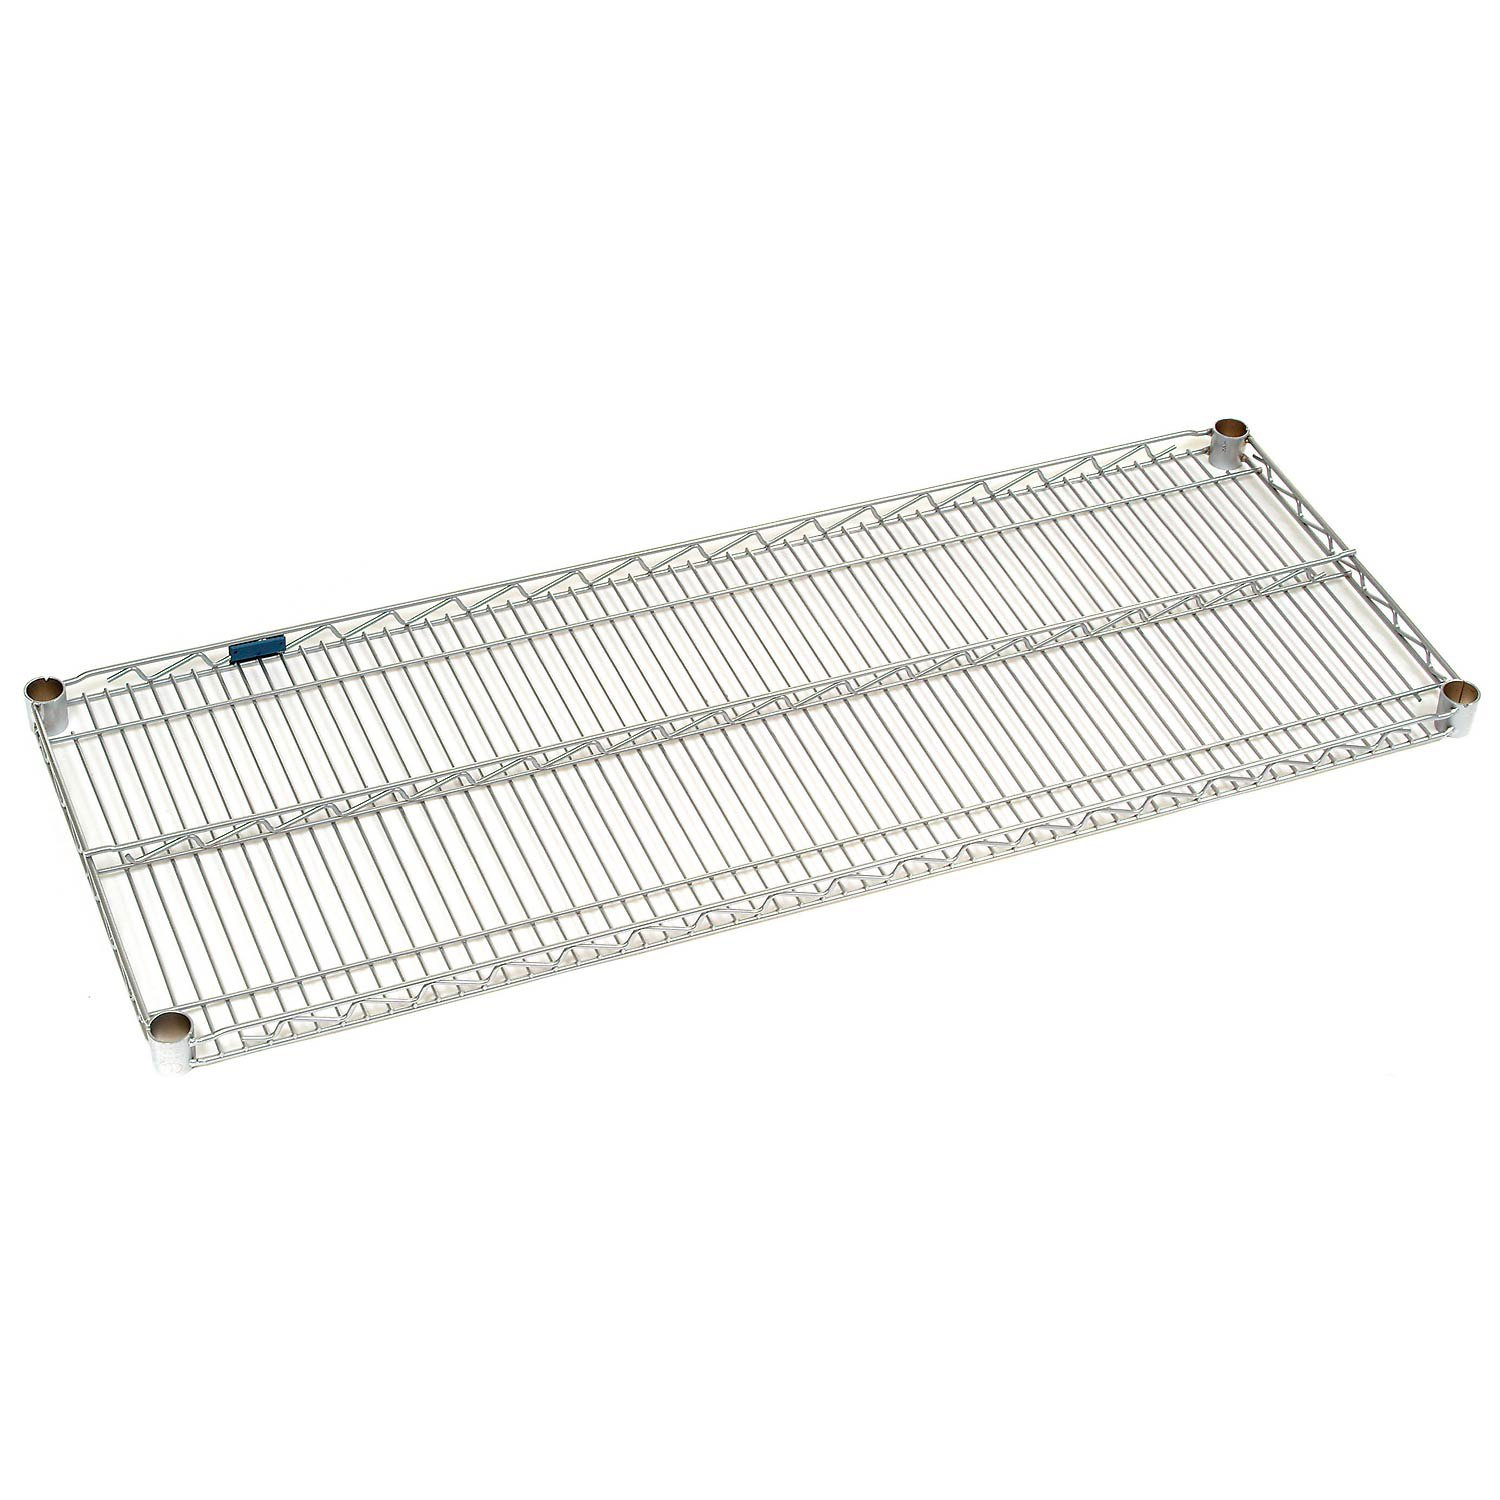 Stainless Steel Wire Shelf with Clips, 36 x 18